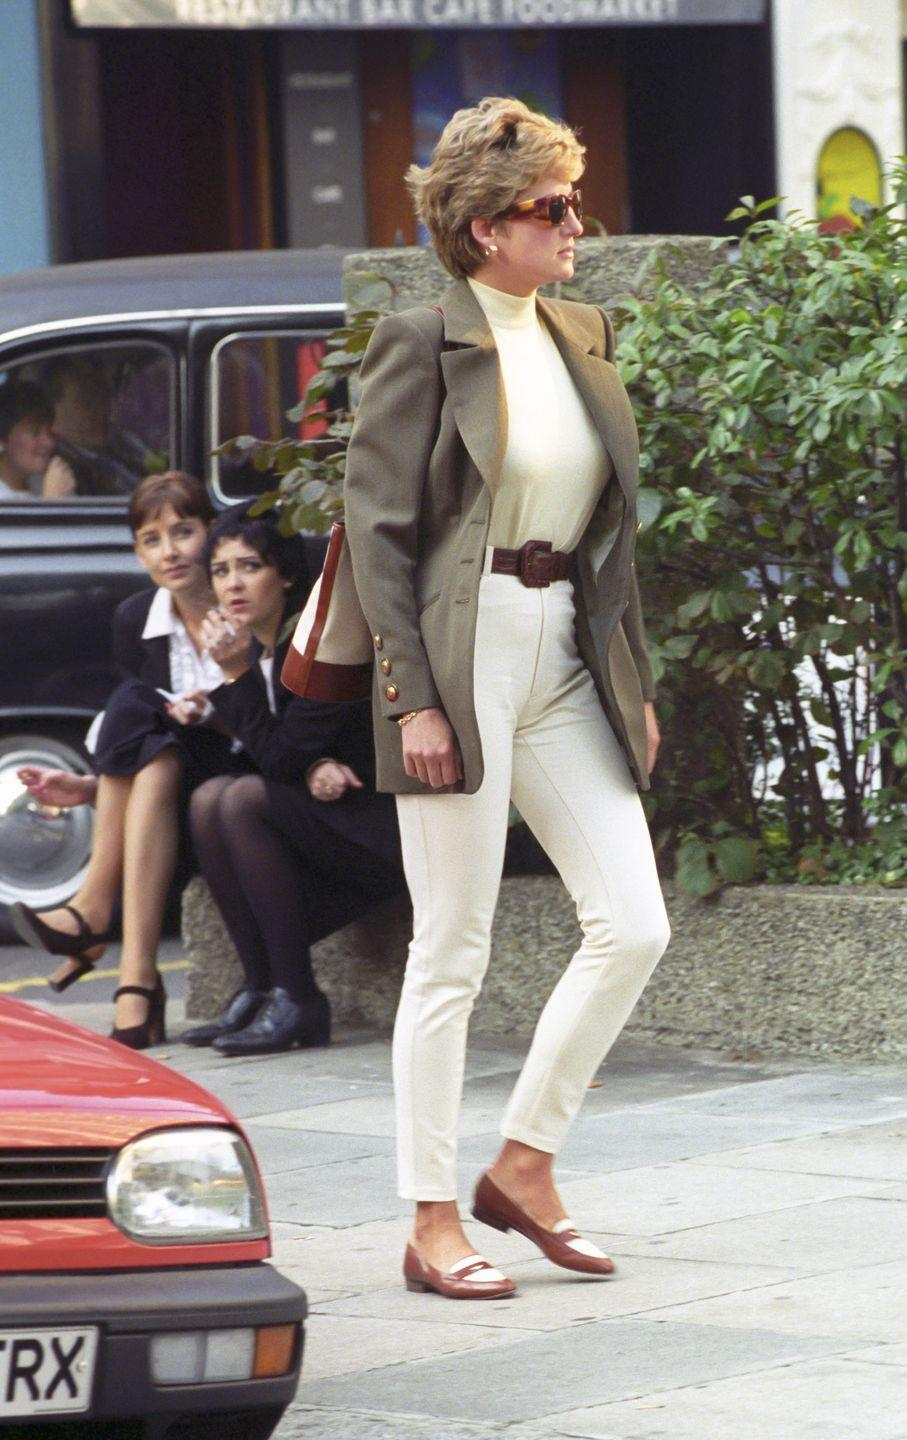 <p>Even Princess Diana's off-duty street style was top-notch. In October 1994, the Princess was spotted wearing this olive green blazer over an all-white look while shopping in London. </p>